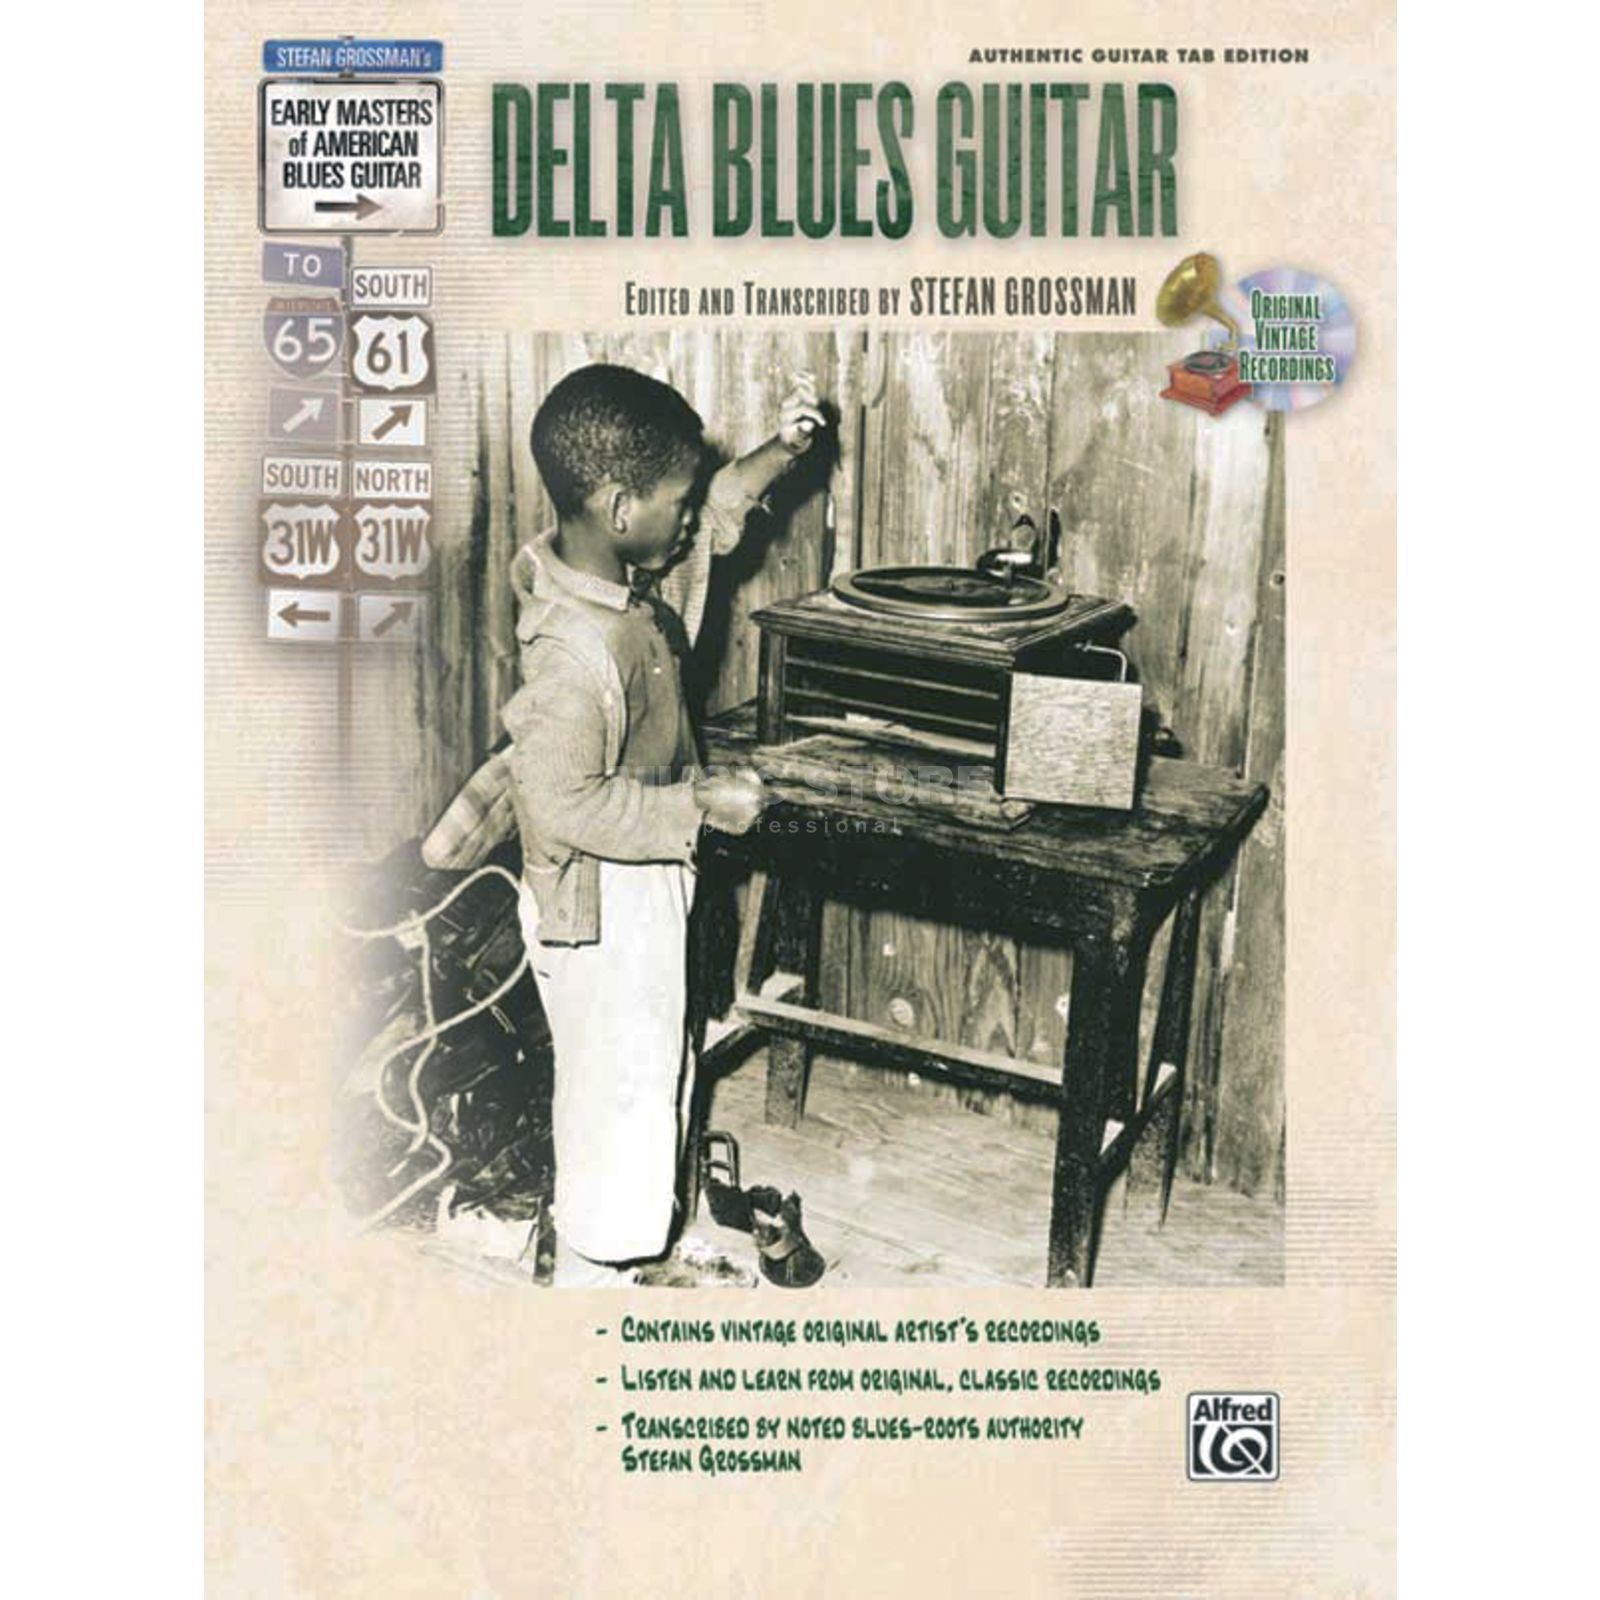 Alfred Music Early Masters Of American Blues Guitar: Delta Blues Guitar Produktbild